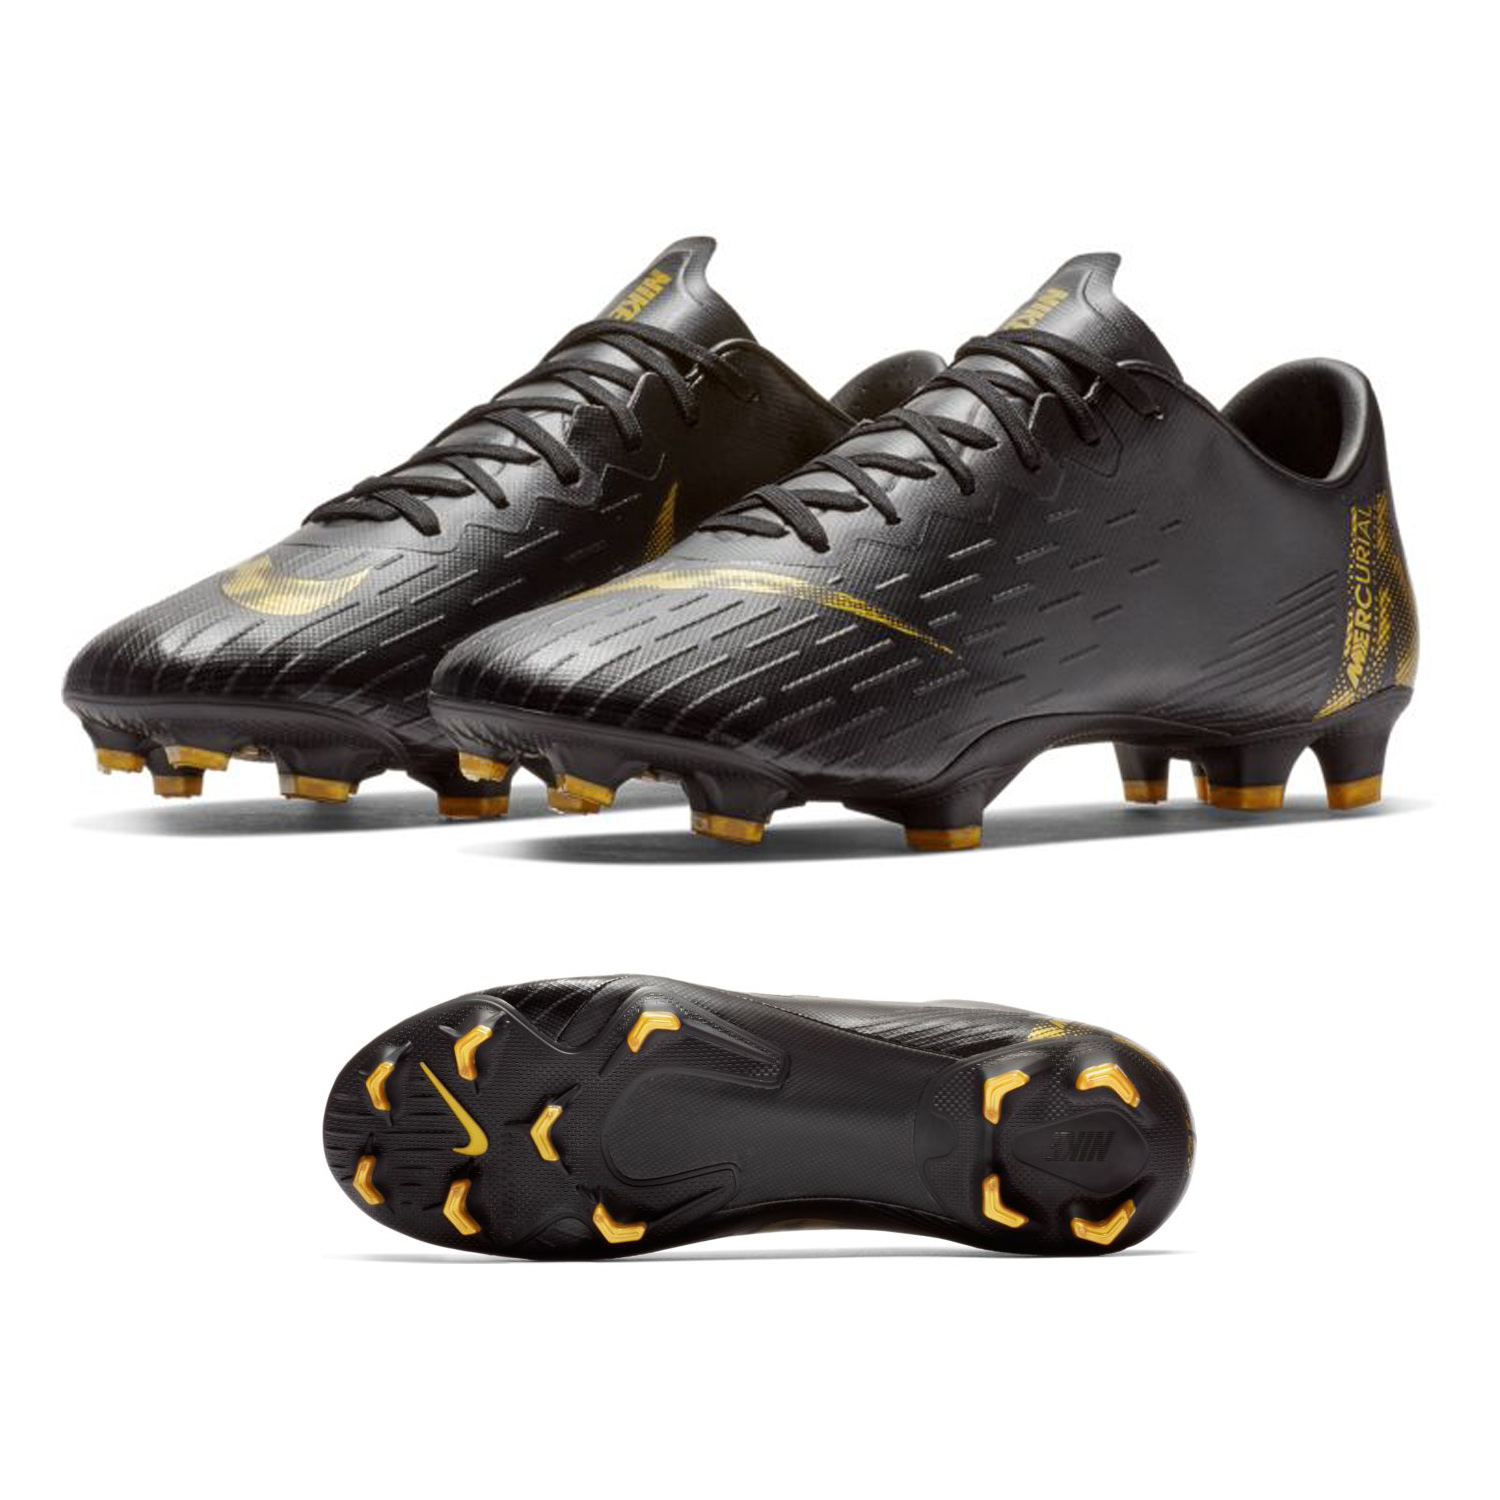 4b0d1fae2 ... studs facilitate bursts of speed and quick stops. Heel lining with  nubuck-like finish grips foot and helps hold boot in place. Imported. Click  here to ...